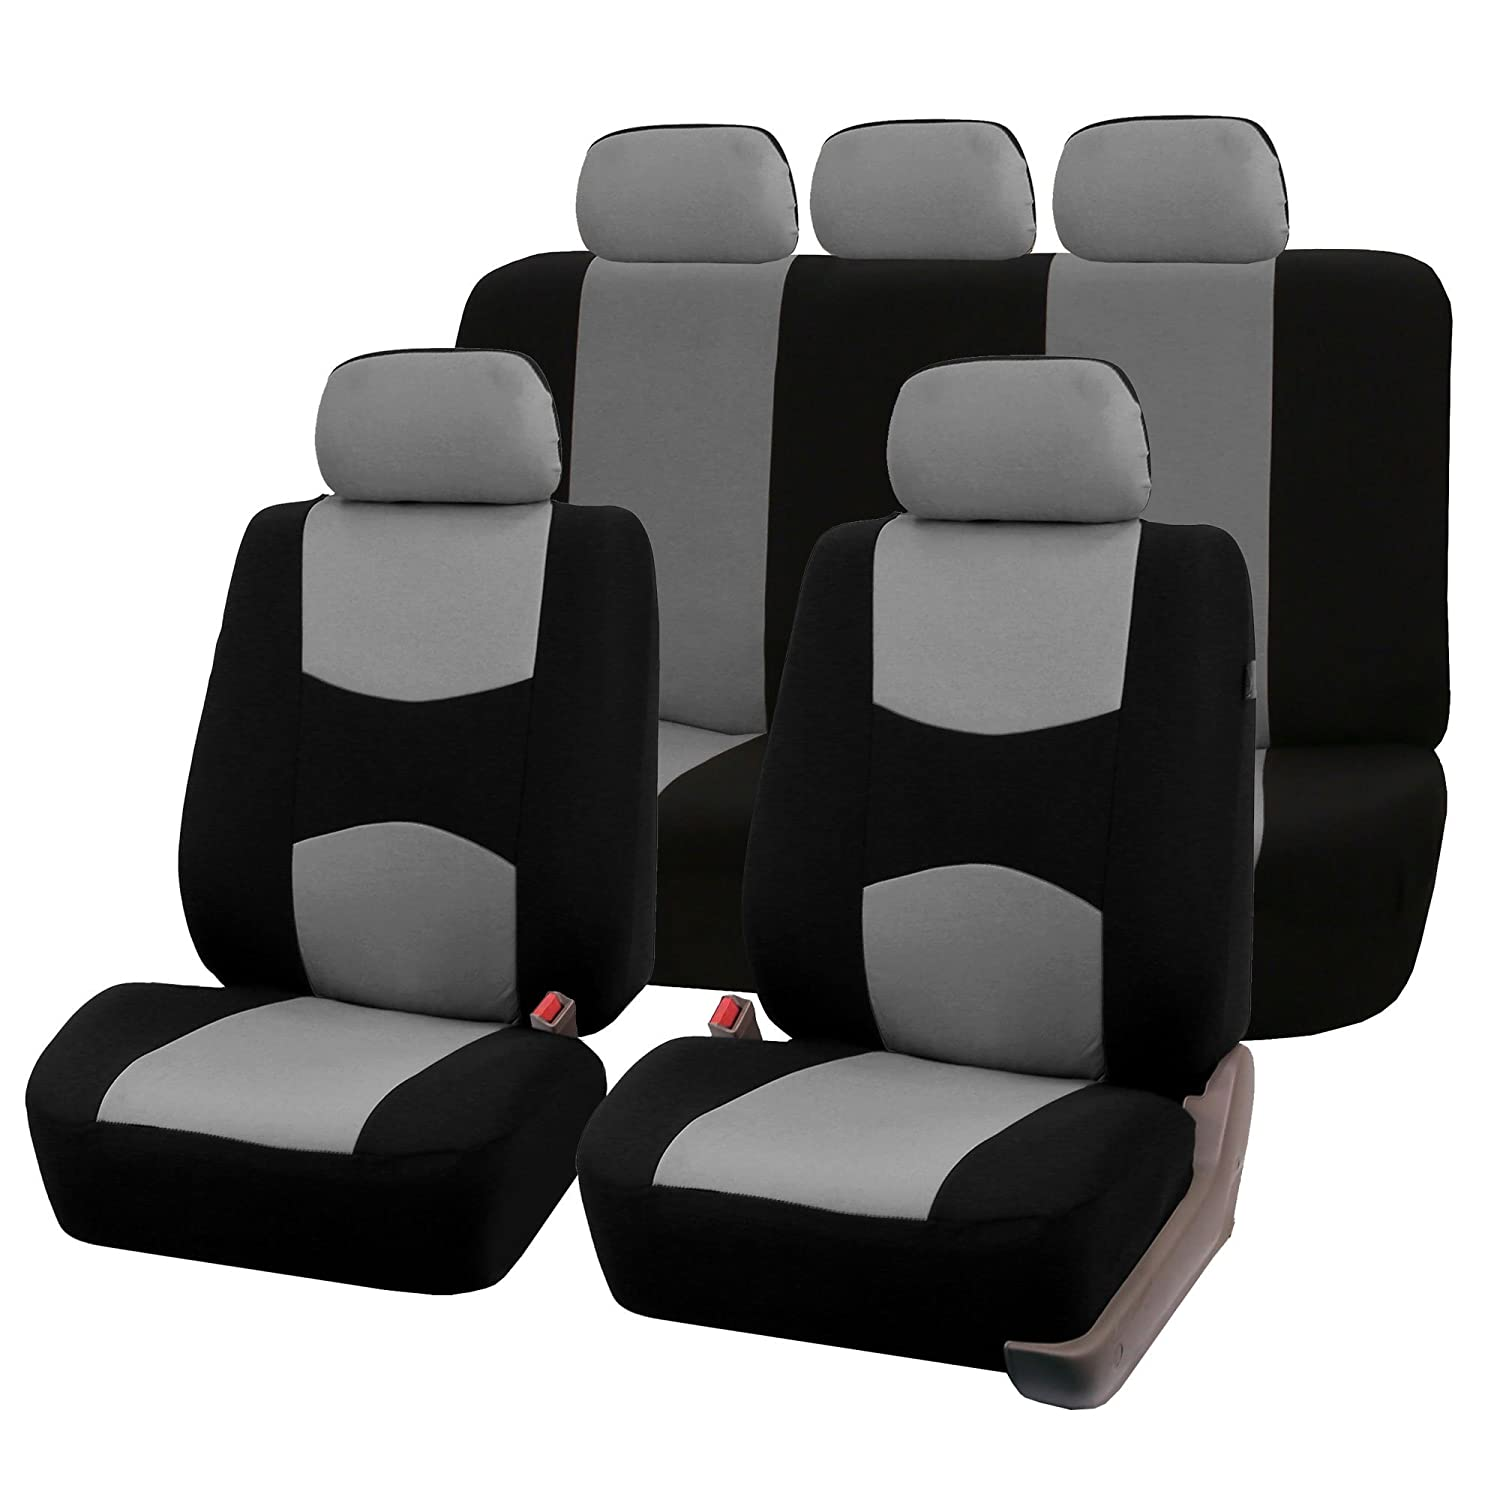 FH Group FB051BLACK102 Black Bucket Airbags Compatible Car Seat Cover, Set of 2